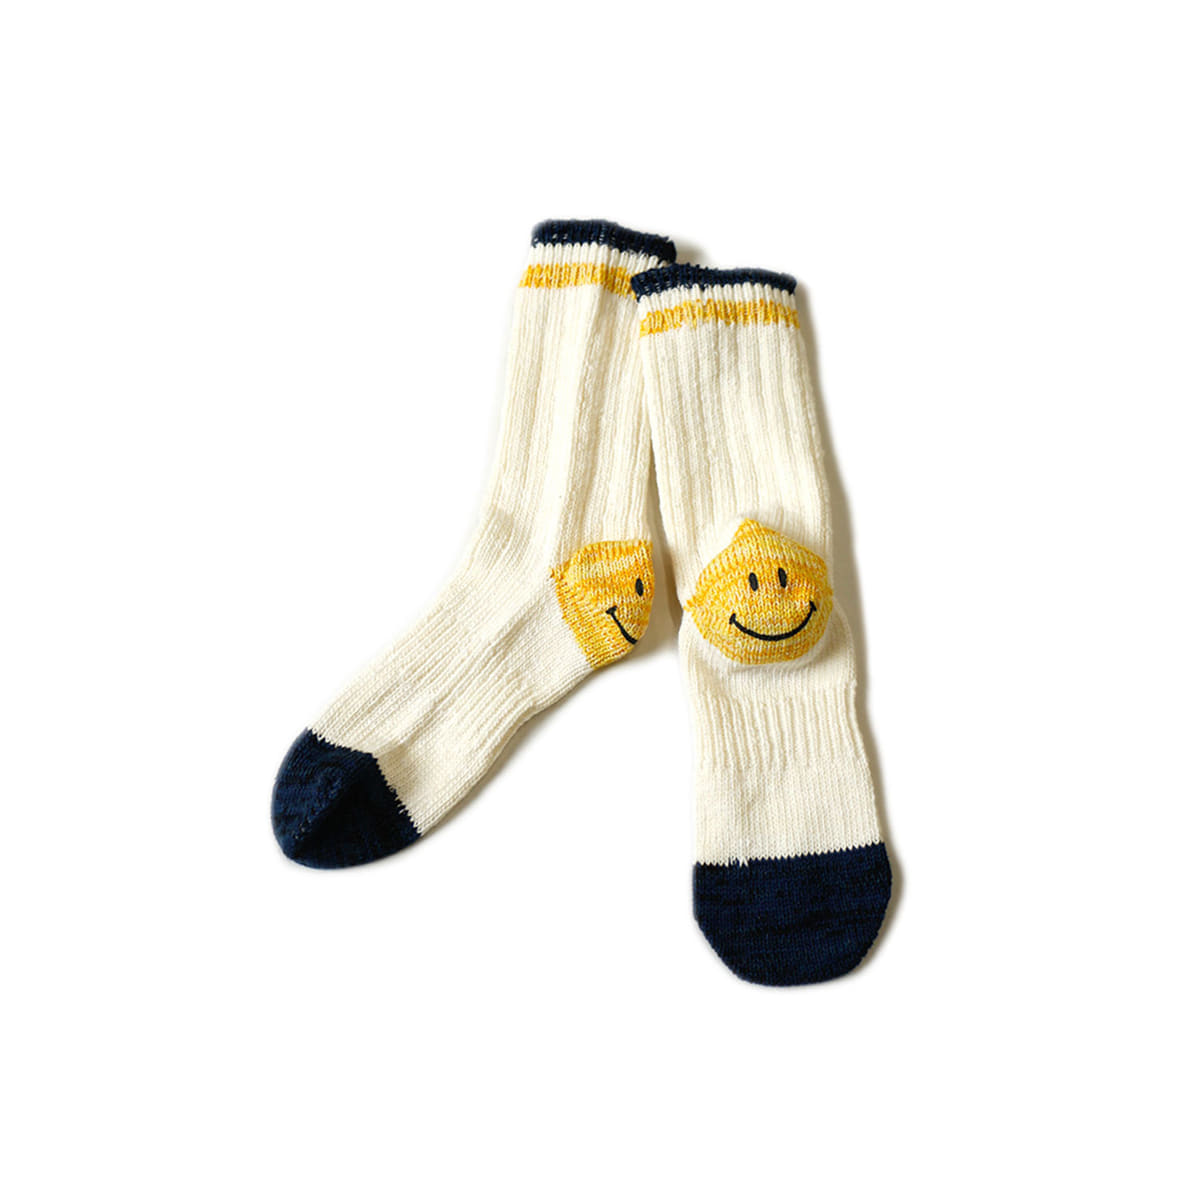 [KAPITAL] 64 YARNS IVY SMILE HEEL HOLD-WELL SOCKS 'WHITE'